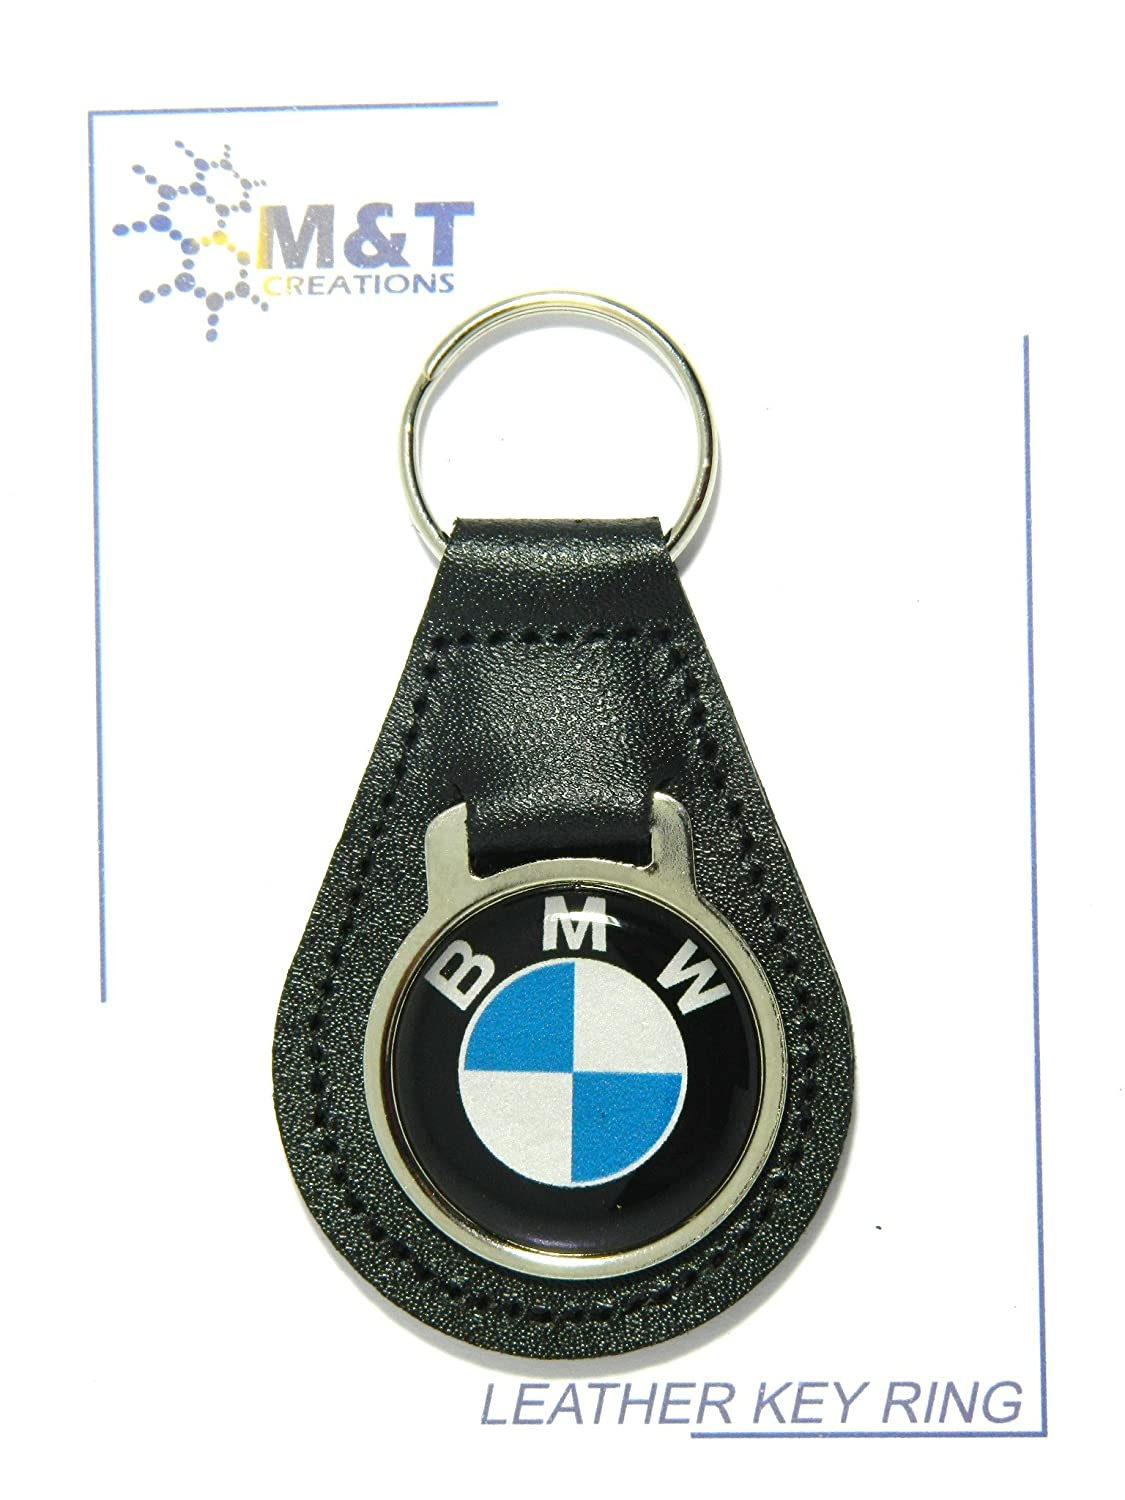 MT Products LEATHER KEYRING MEDALLION INSERT 3D PLASTIC IMAGE